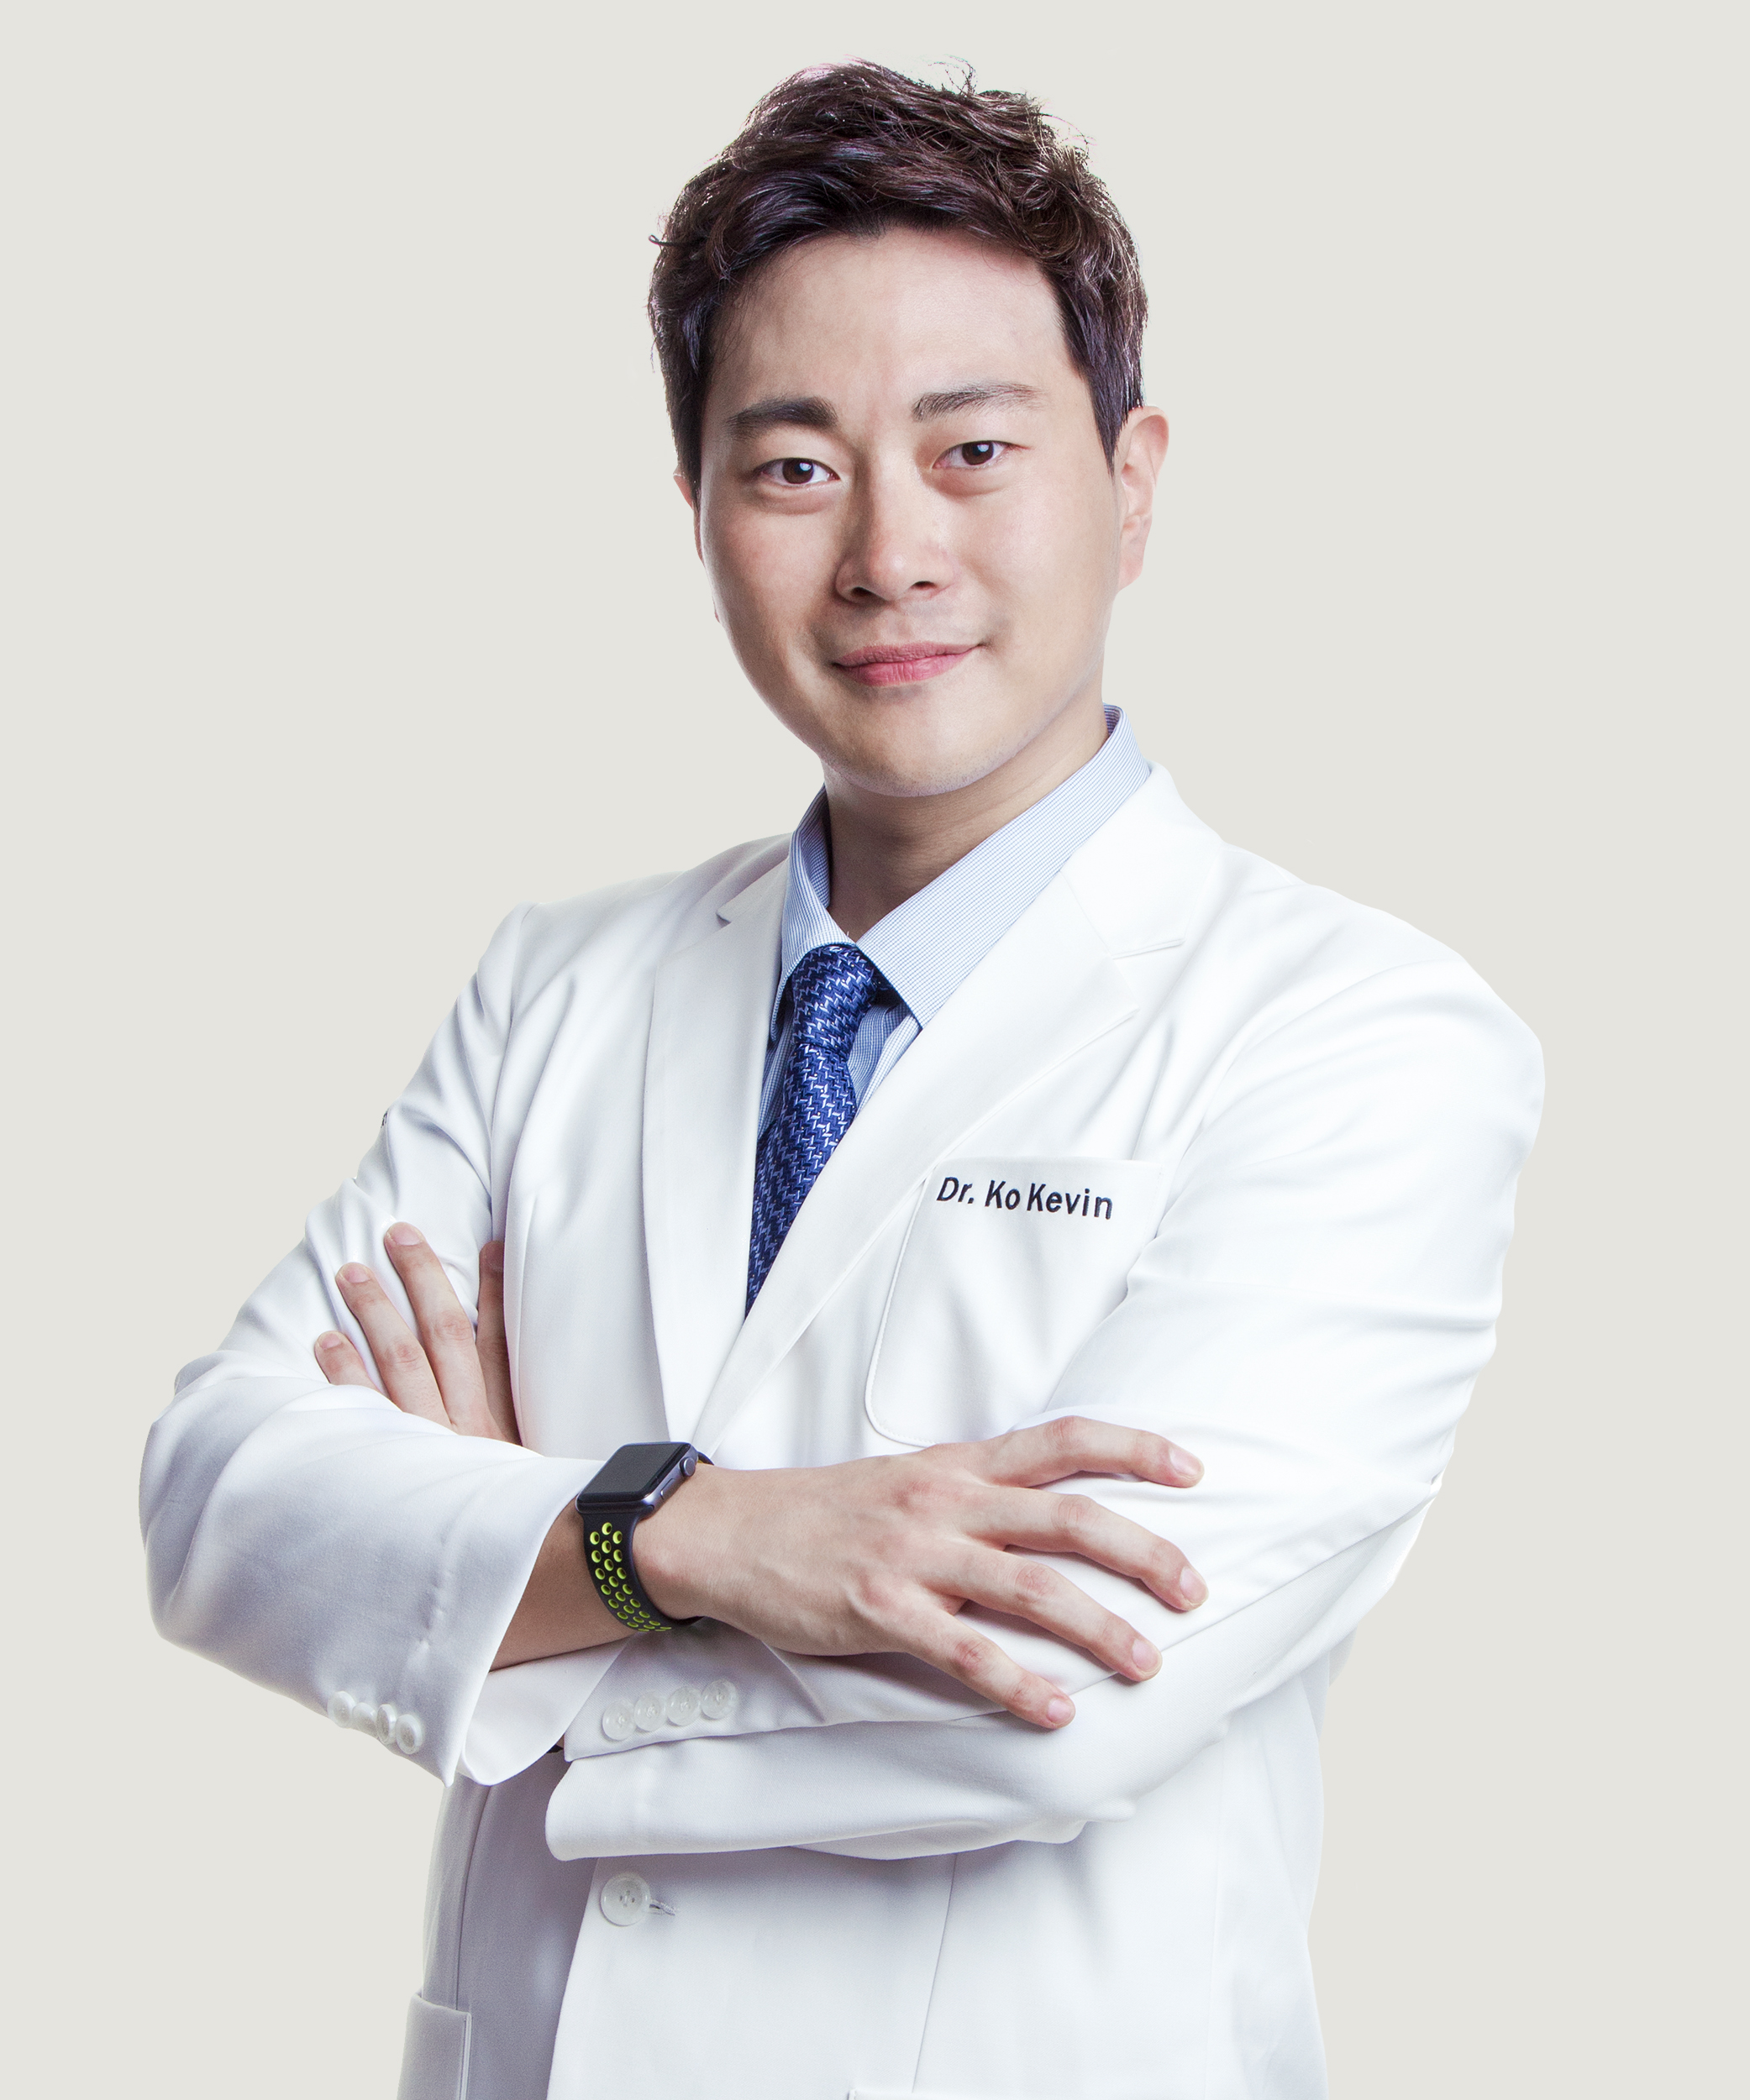 http://bfdentistry.com.vn/wp-content/uploads/2020/12/ko-kevin-1.jpg